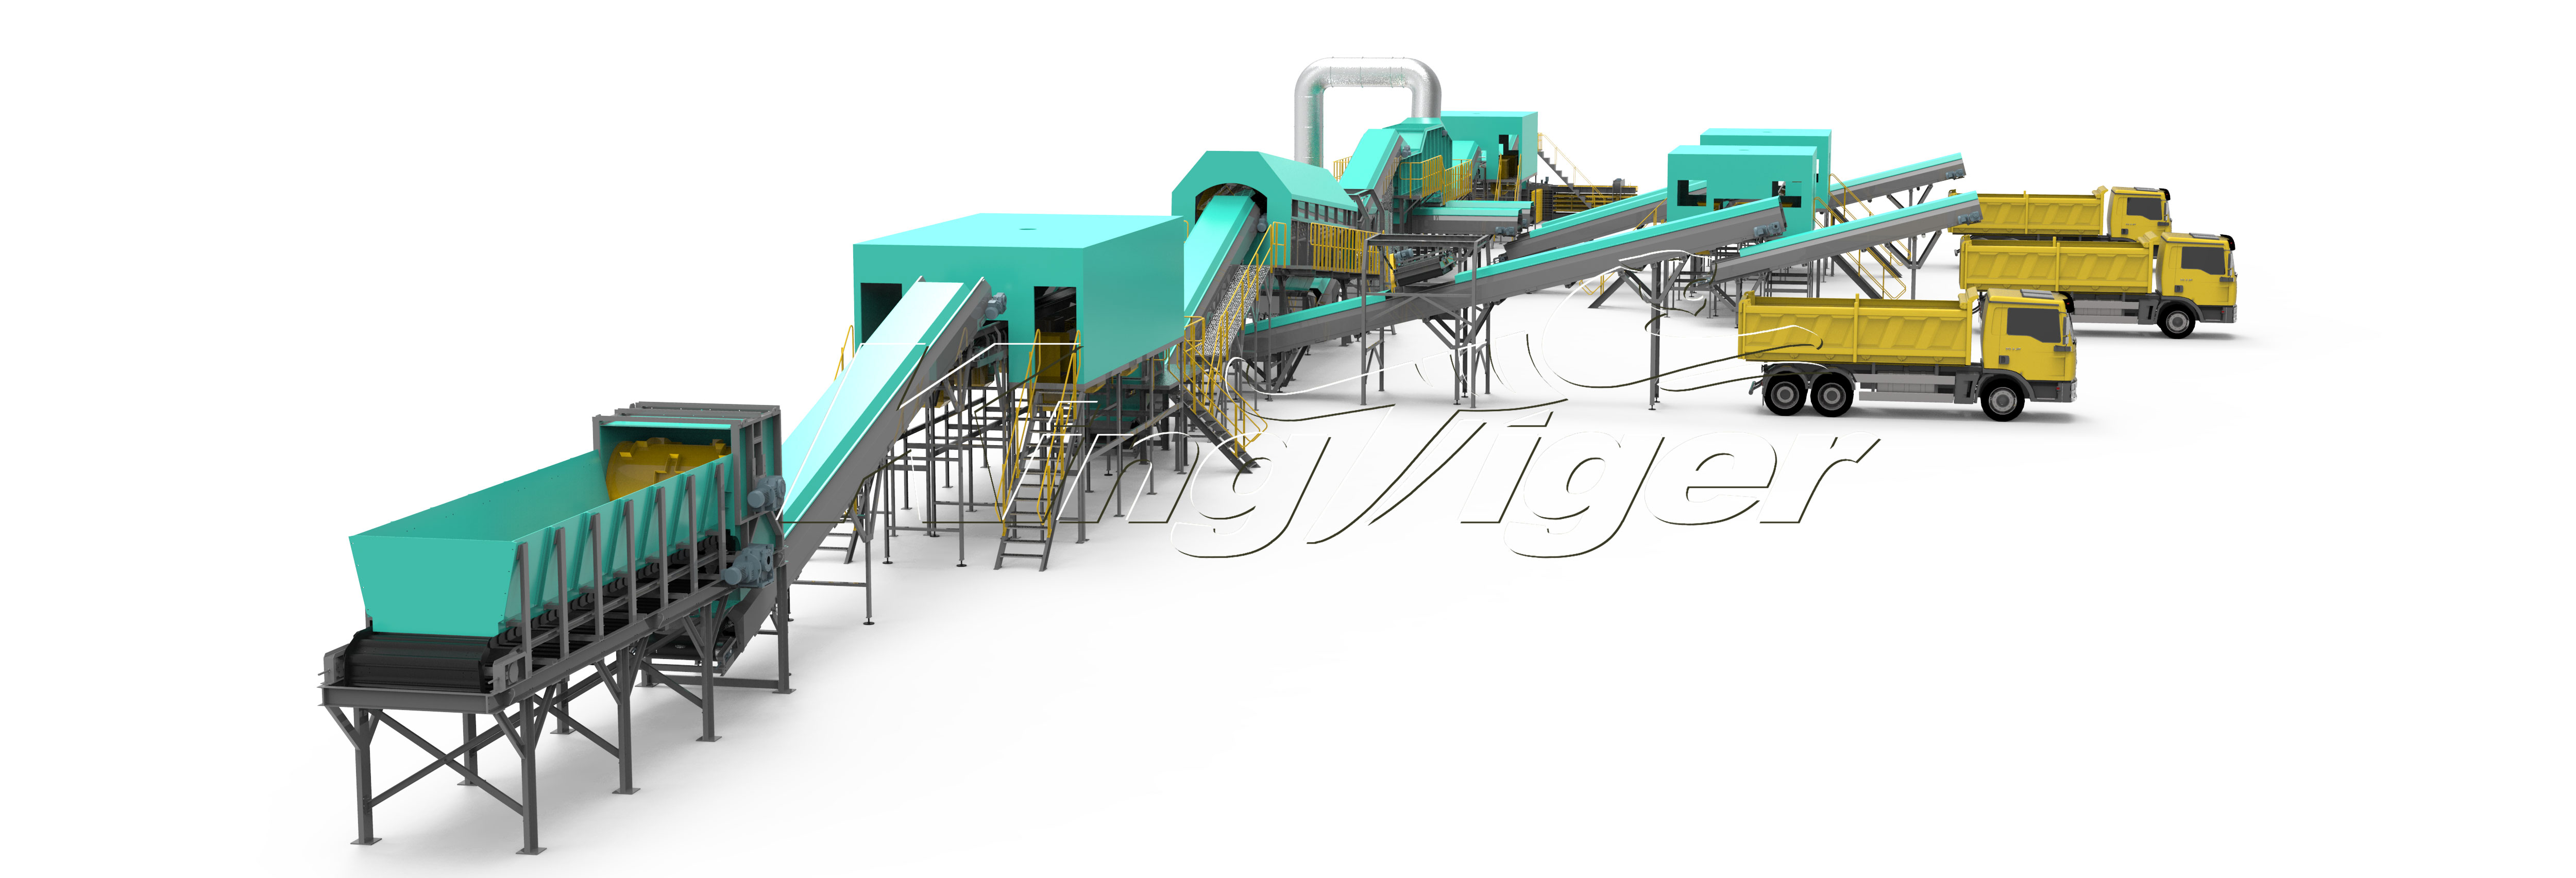 Municipal Solid Waste Sorting Machine